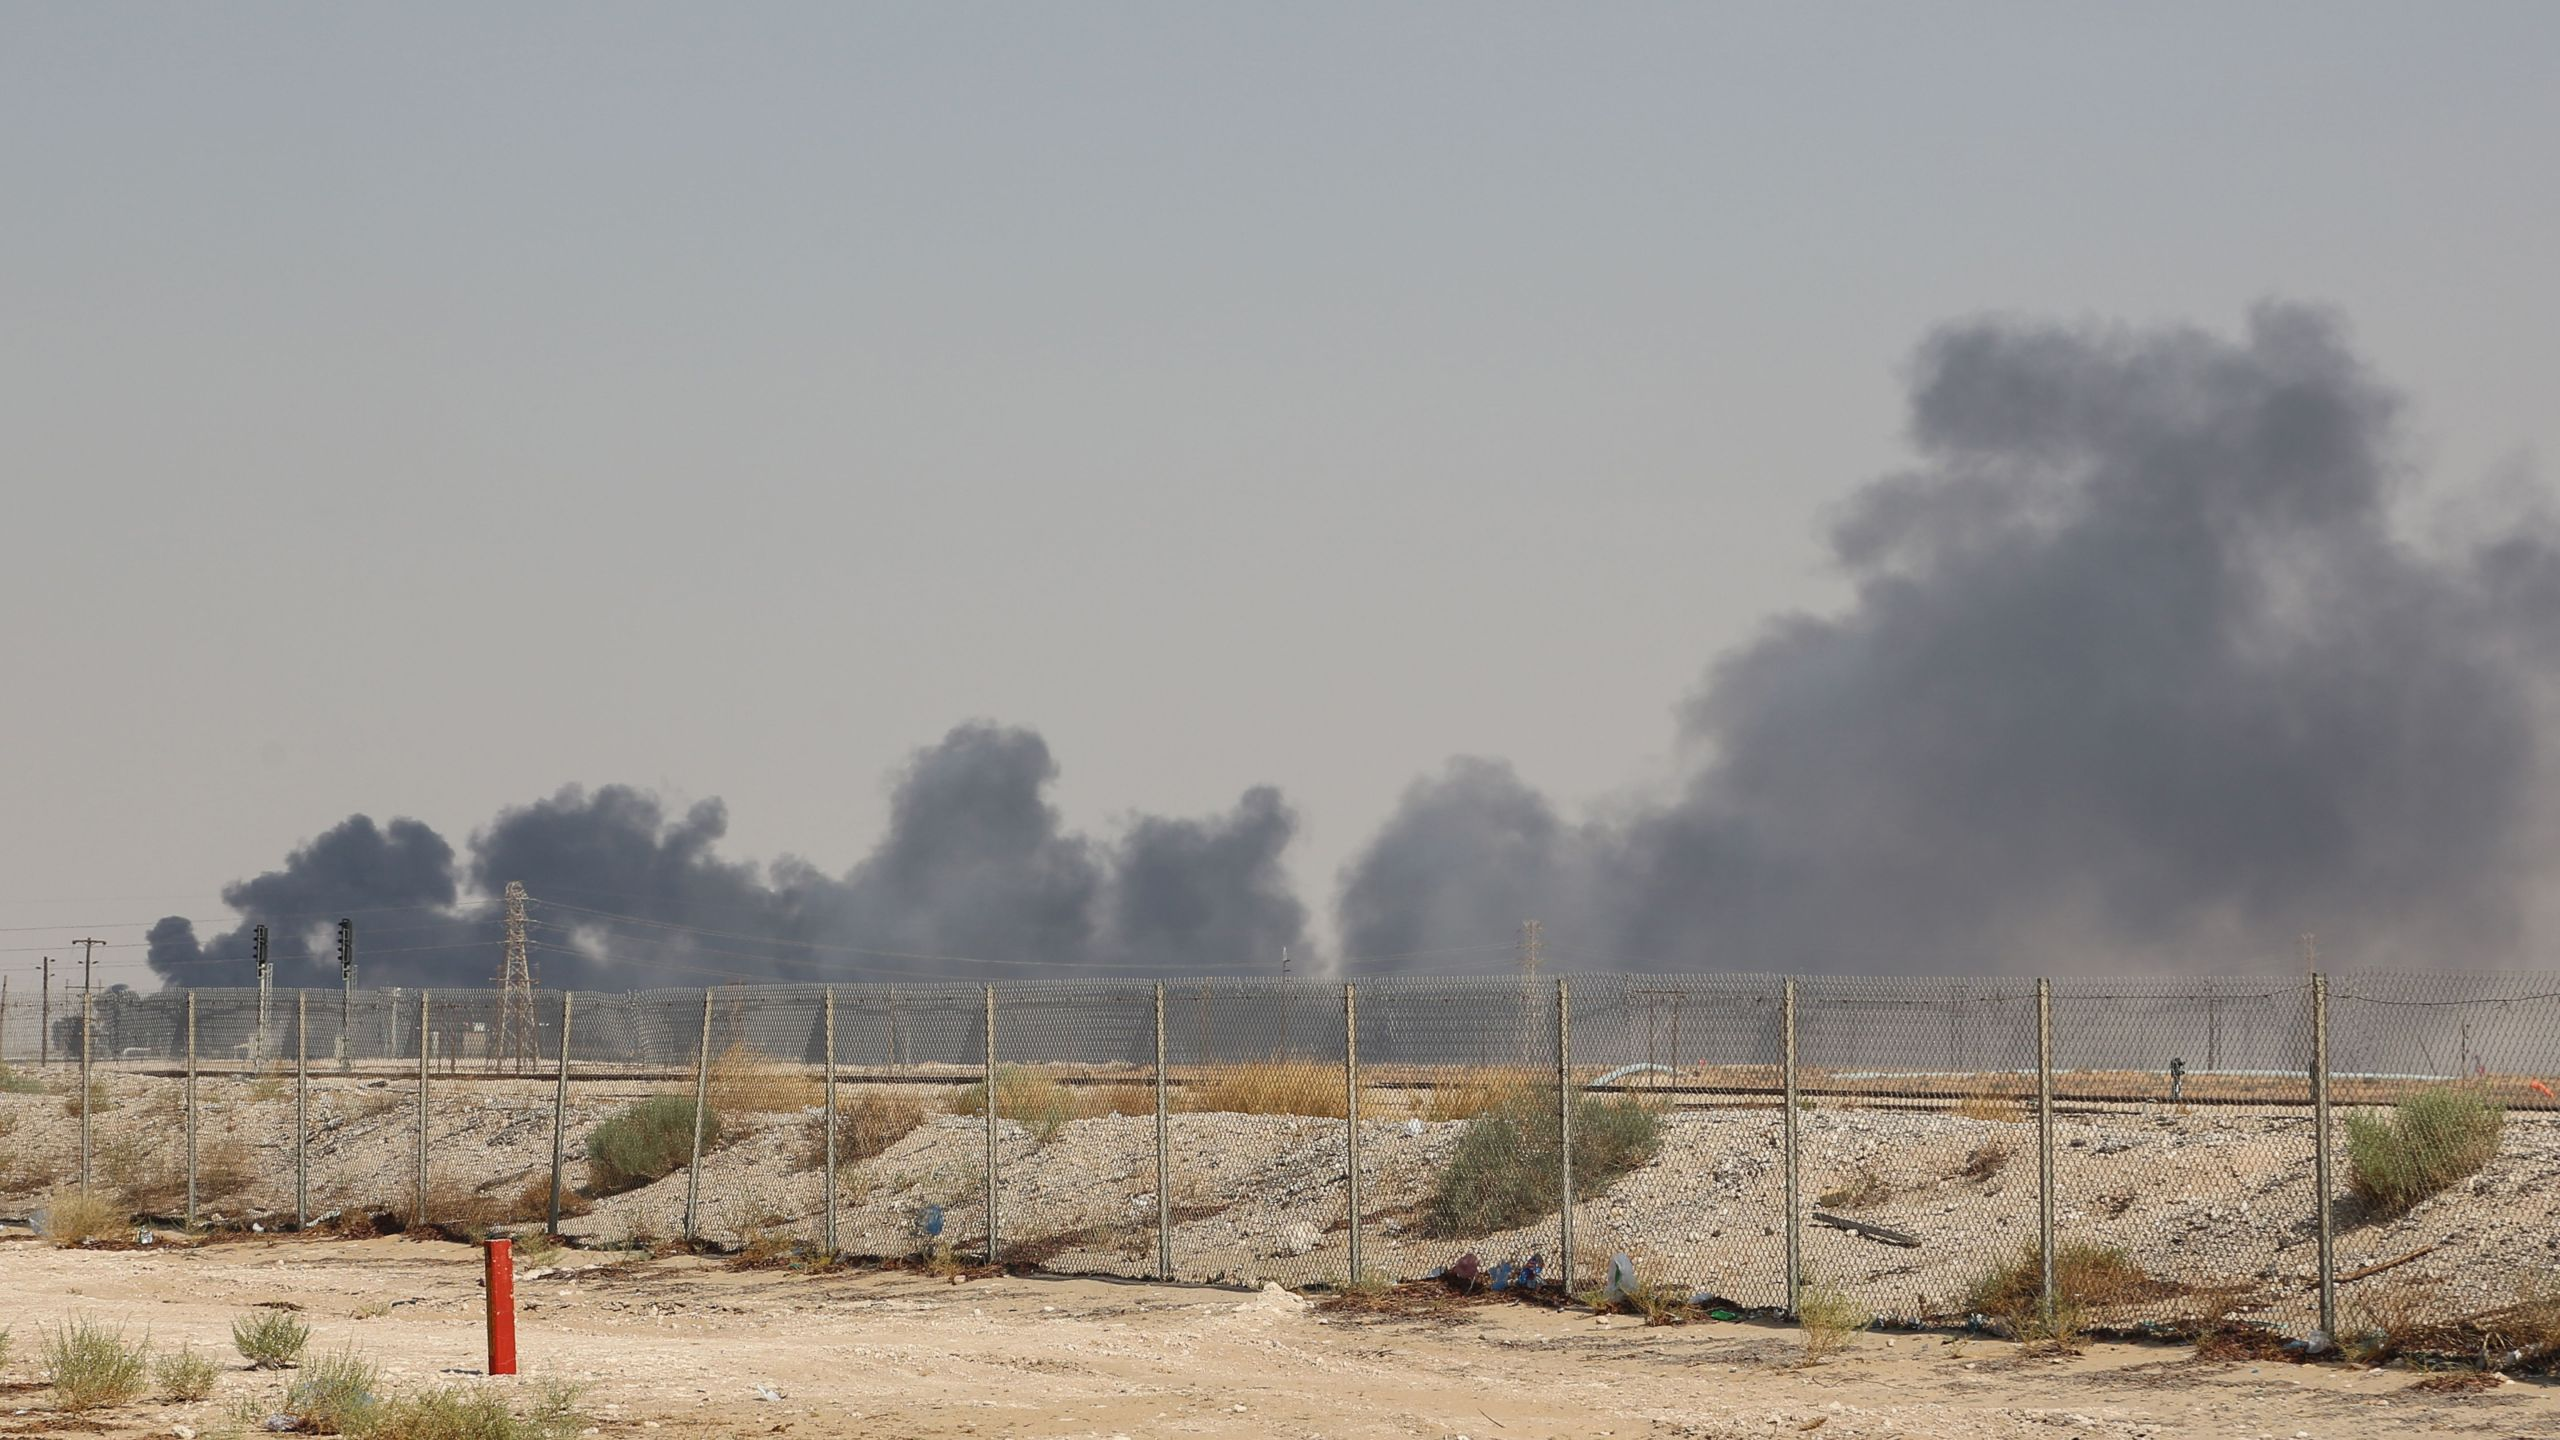 Smoke billows from an Aramco oil facility in Abqaiq about 37 miles southwest of Dhahran in Saudi Arabia's eastern province on September 14, 2019.(Credit: AFP/Getty Images)